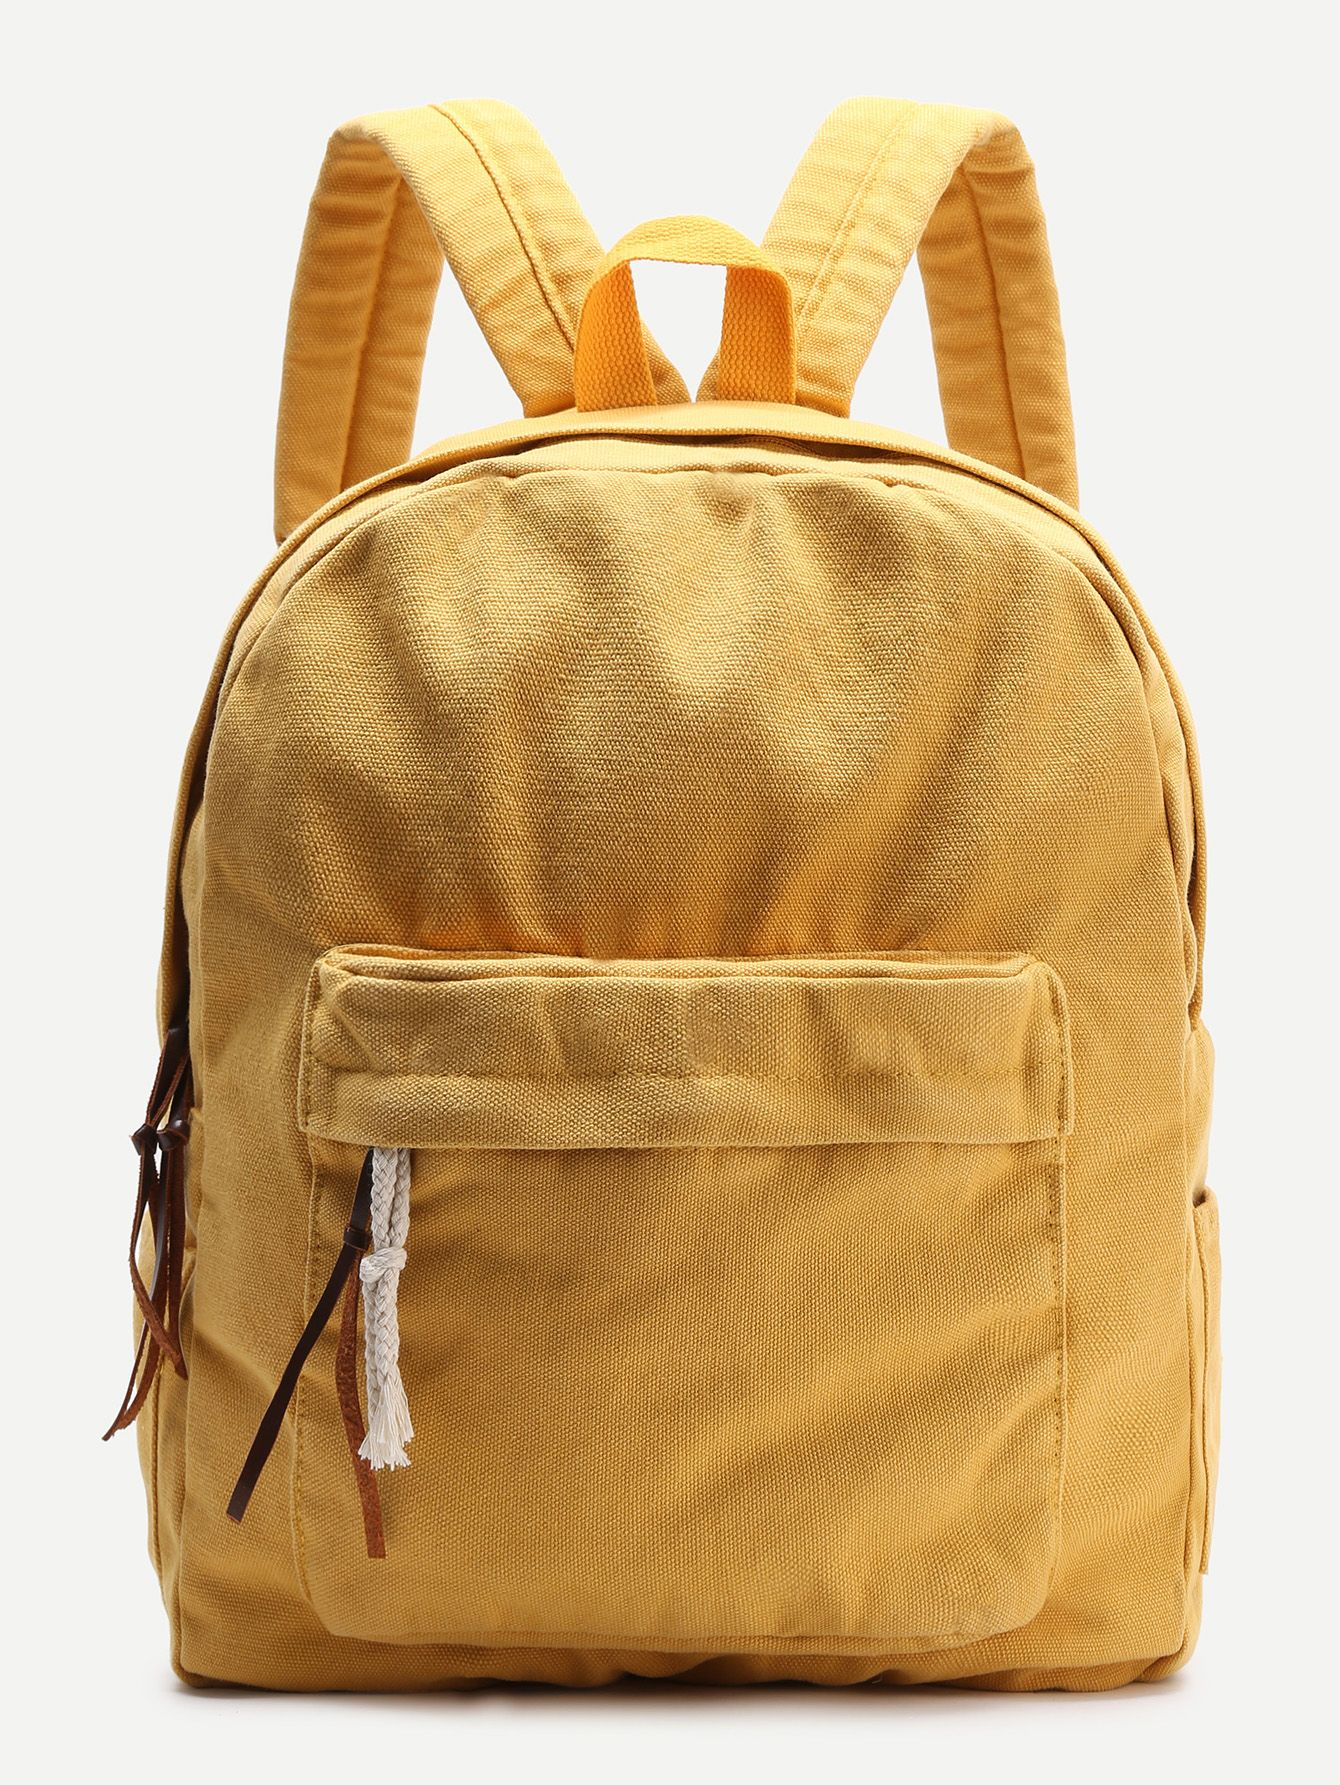 c90c55306d Sooo cute for school Yellow Backpack